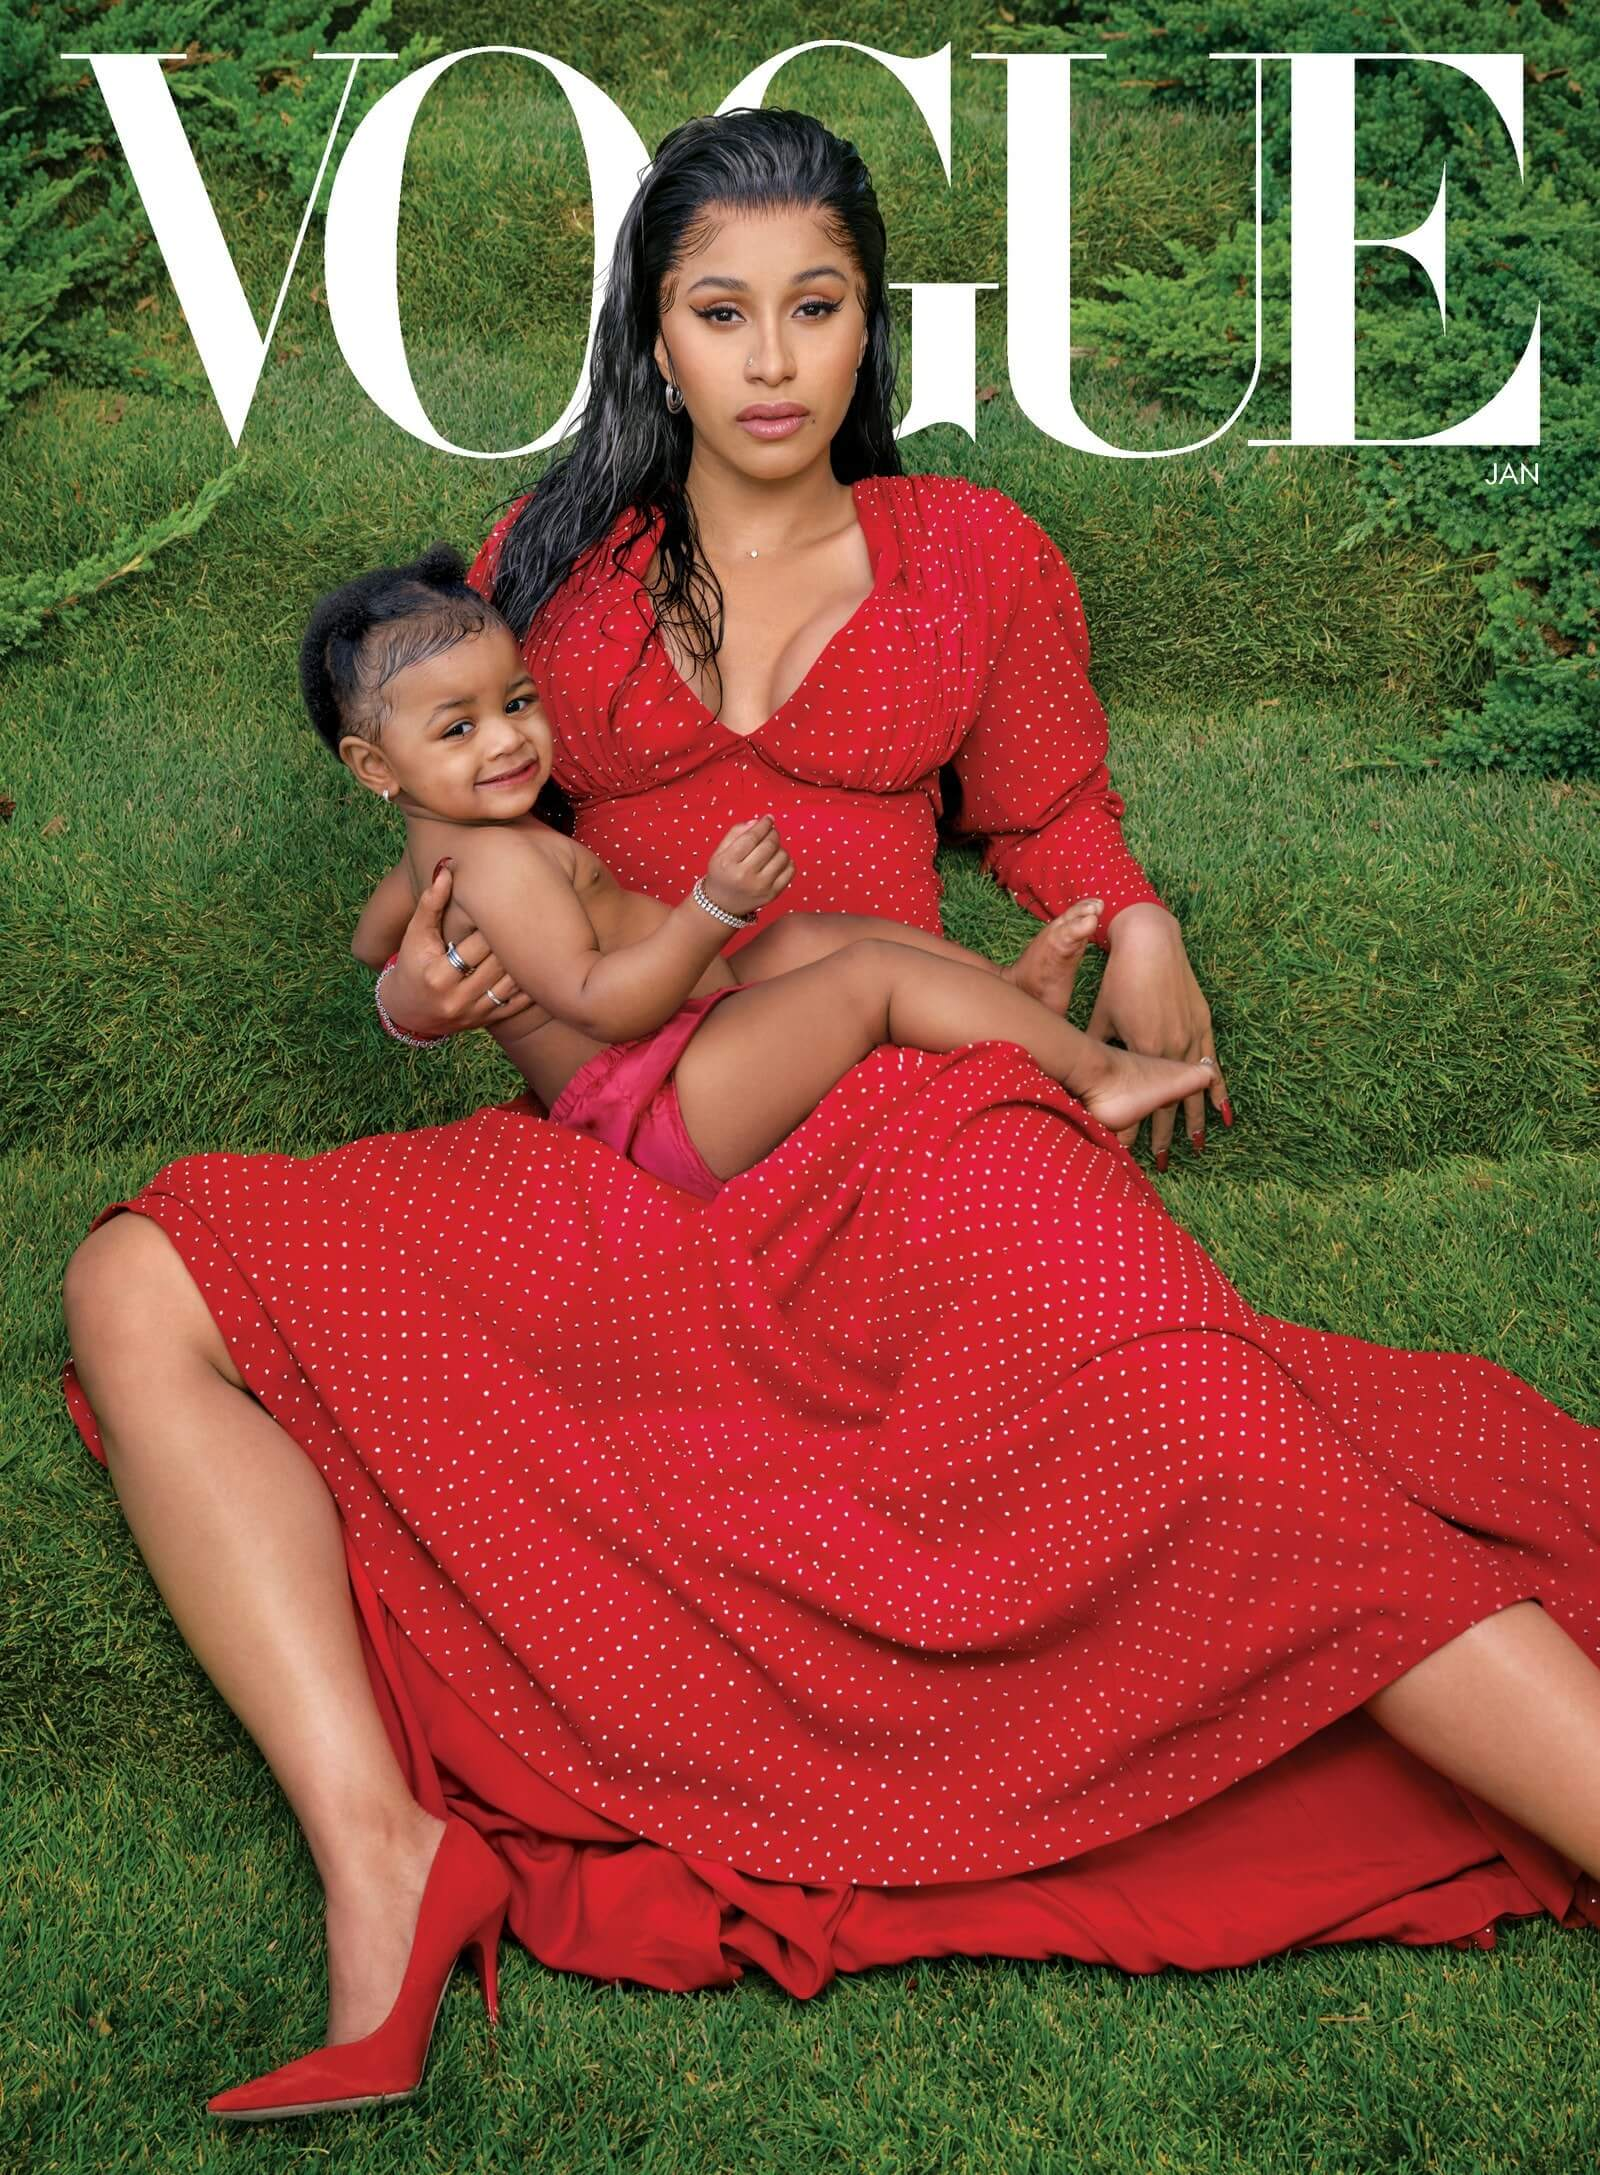 Cardi B and her daughter Kulture cover VOGUE magazine